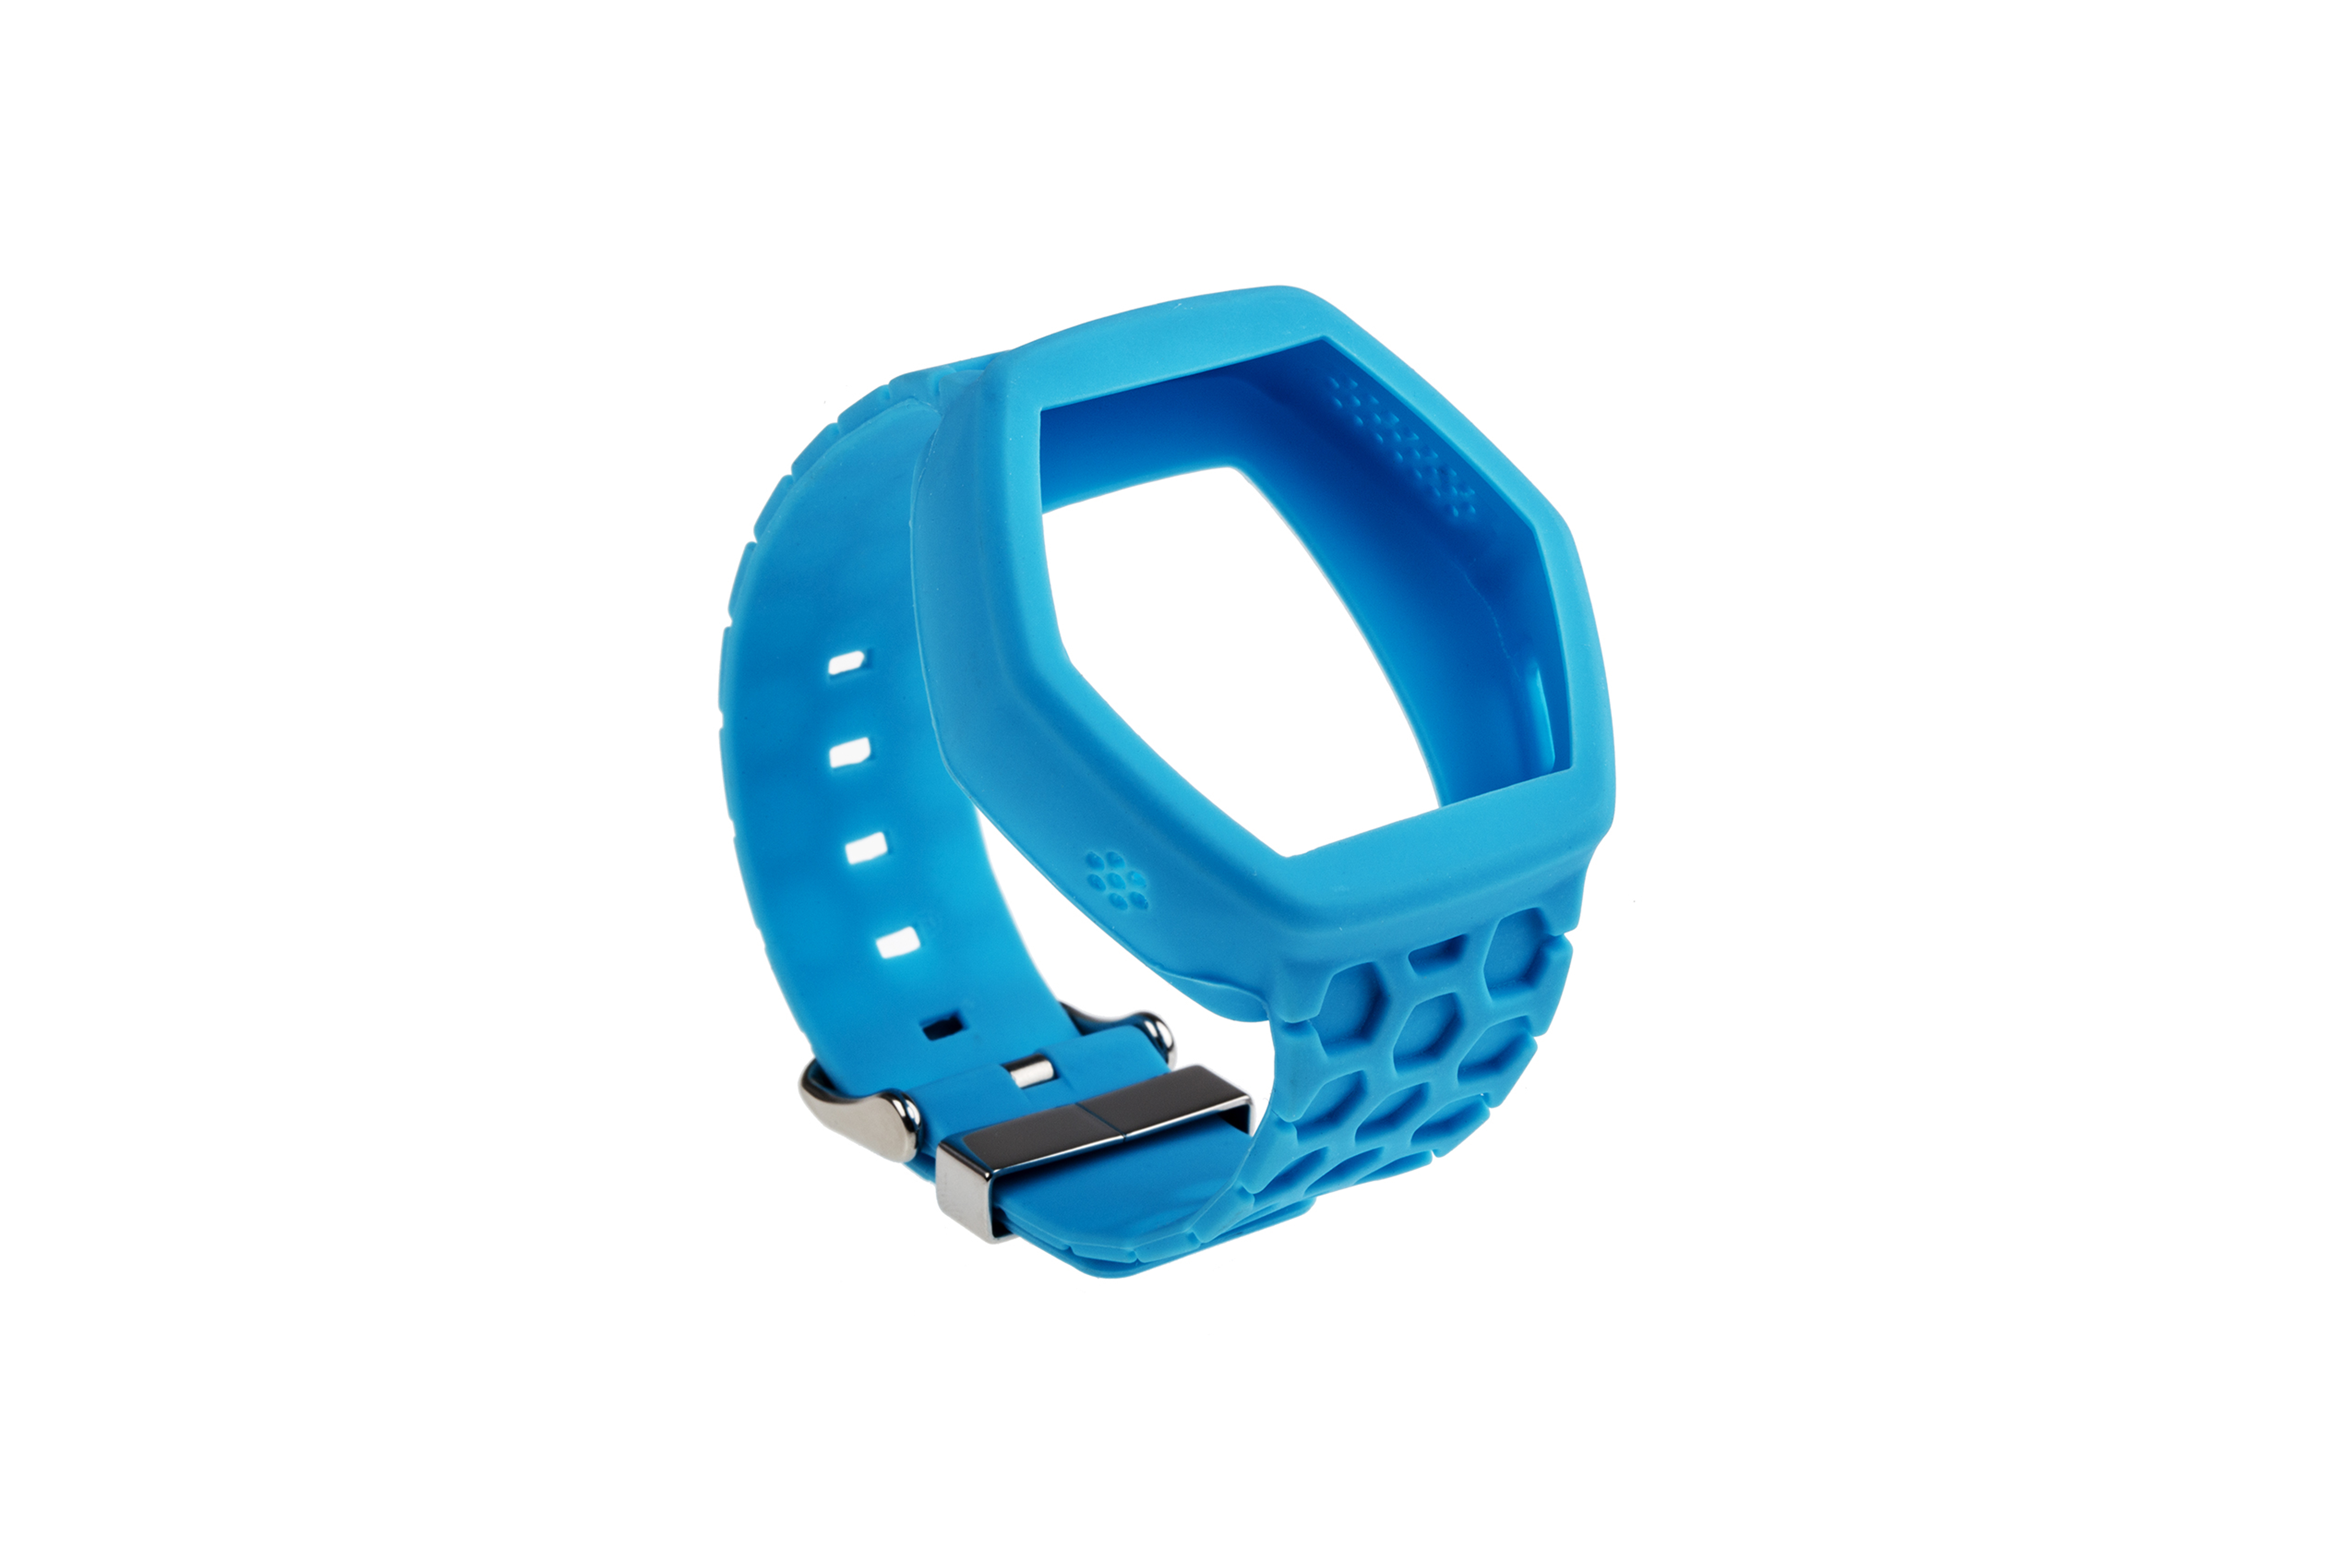 PACCHETTO ACCESSORI PER KIT IOT DEV HEXIWEAR BLU